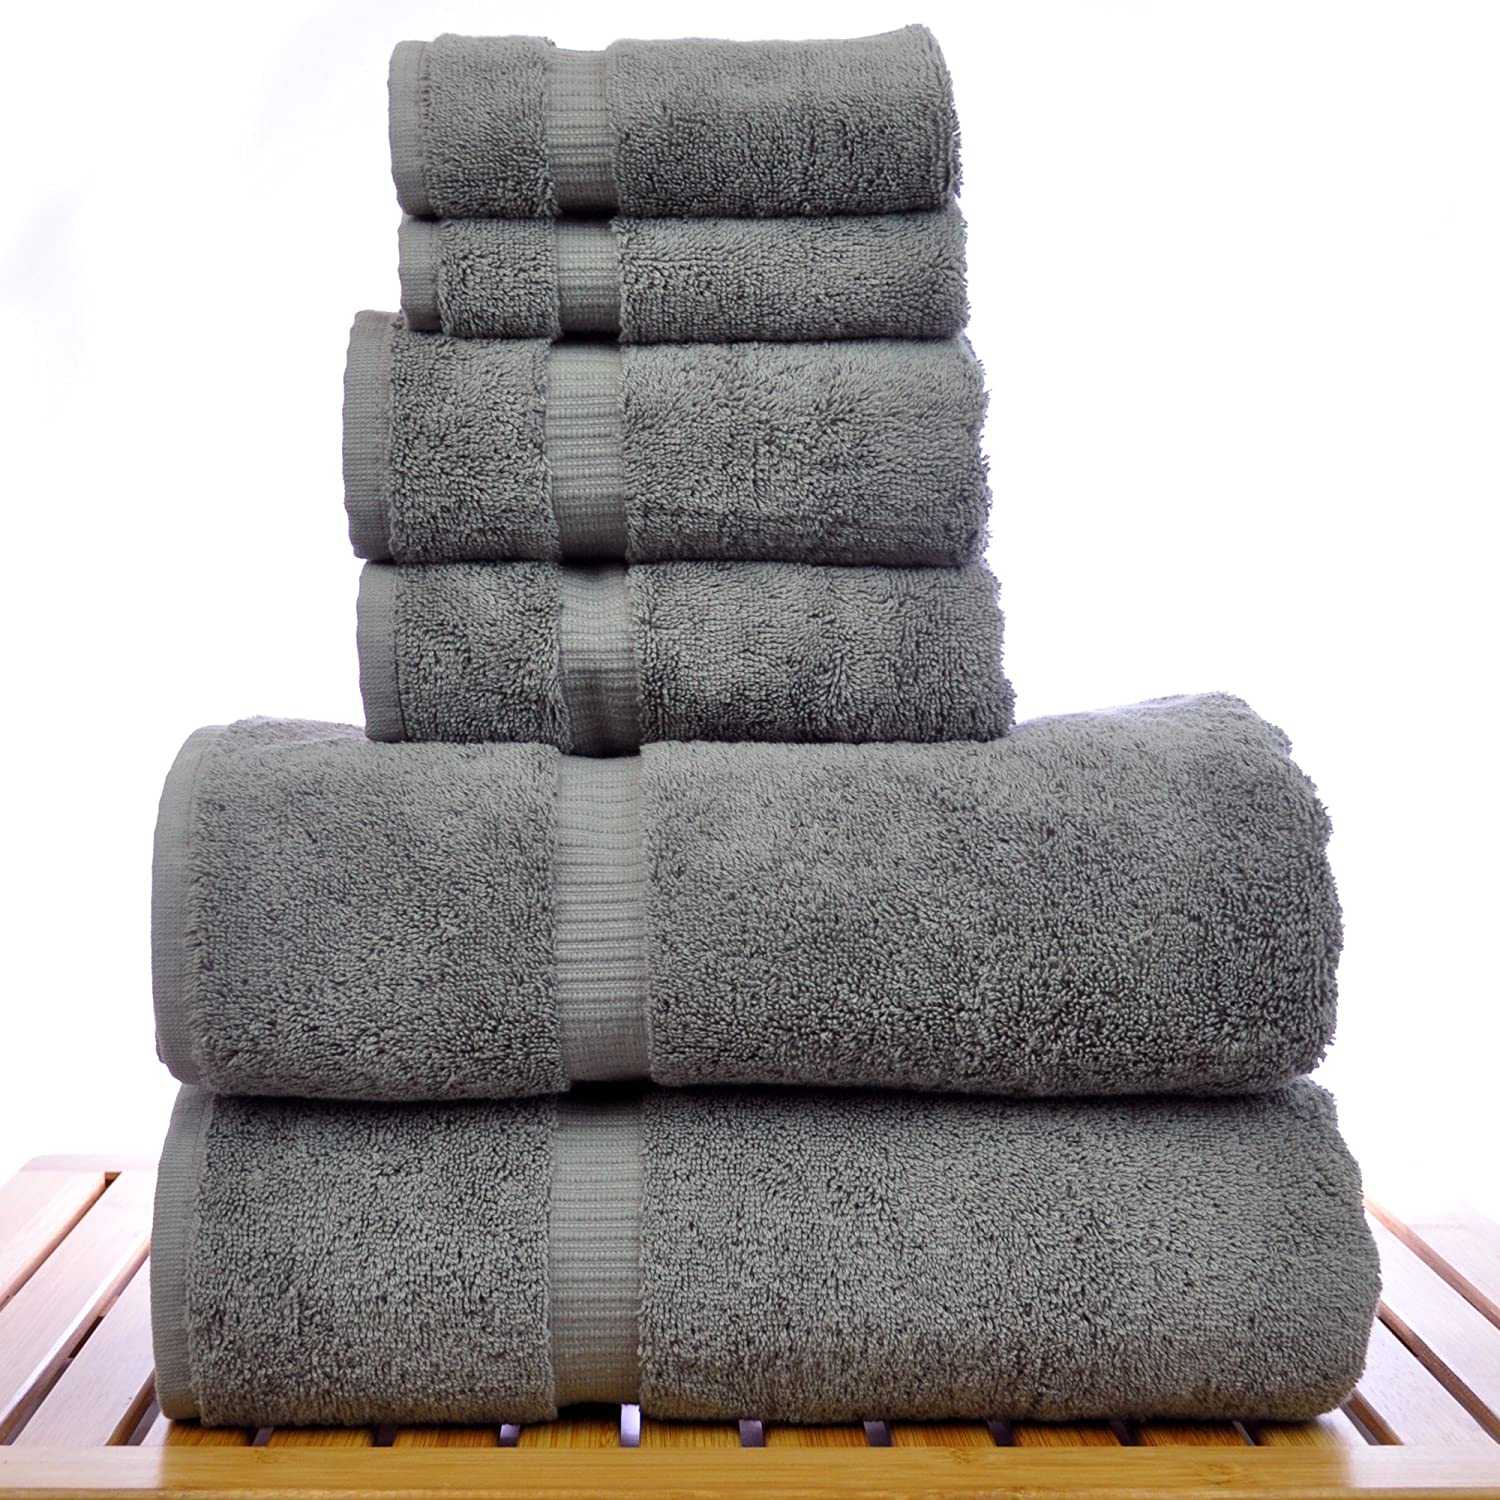 Amazon com  Luxury Hotel   Spa Towel Turkish Cotton Bath Towel Bundle   Gray  6 Piece Towel Set   Home   Kitchen. Amazon com  Luxury Hotel   Spa Towel Turkish Cotton Bath Towel